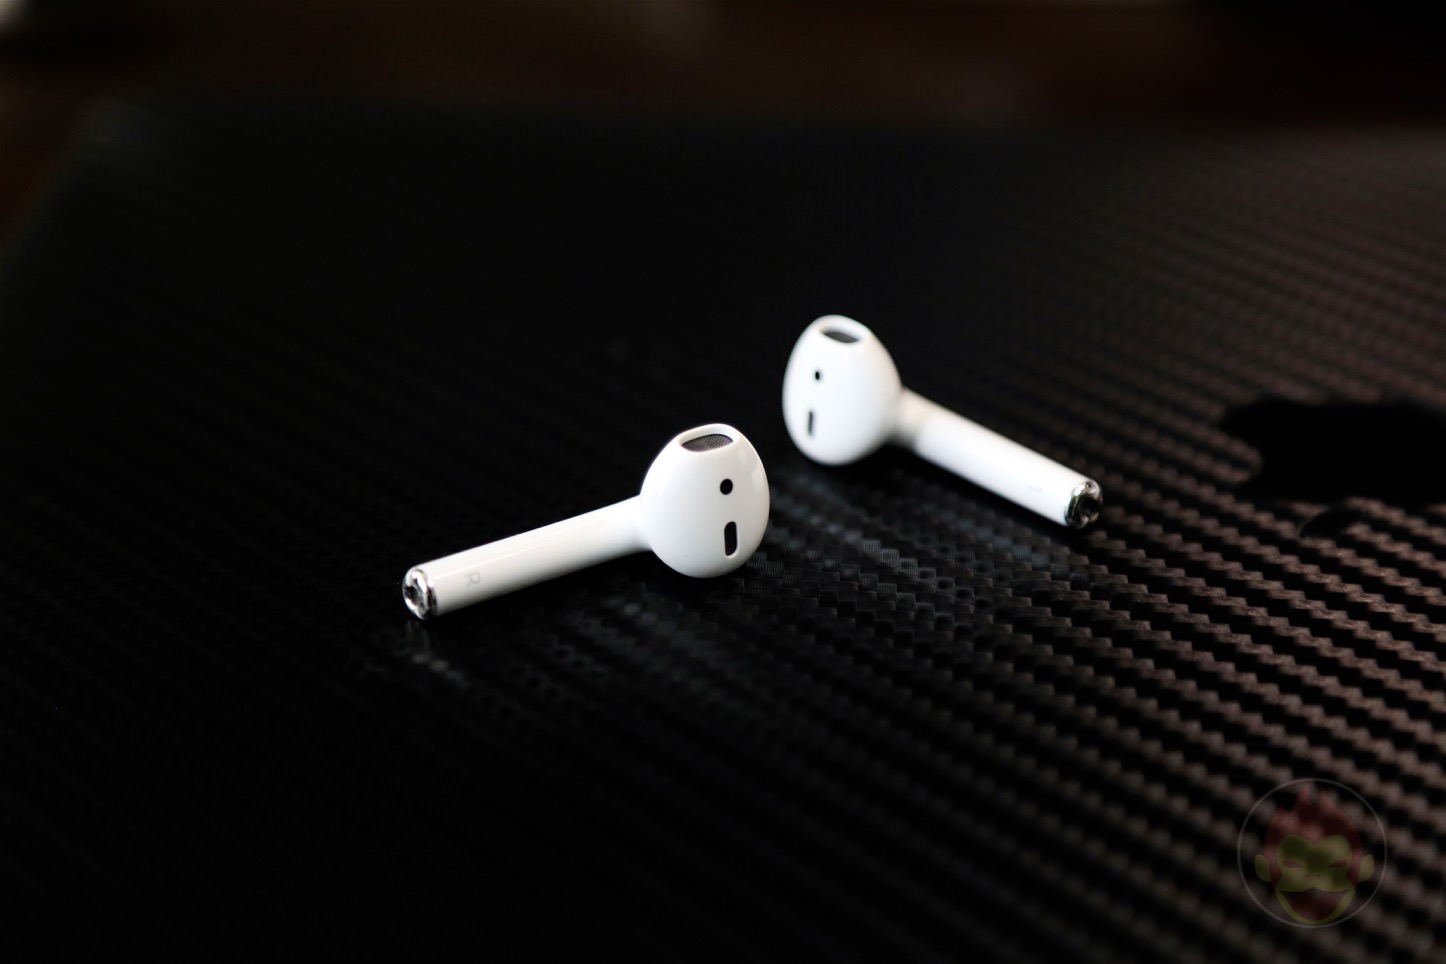 Apple-AirPods-Wireless-Earphones-13.jpg